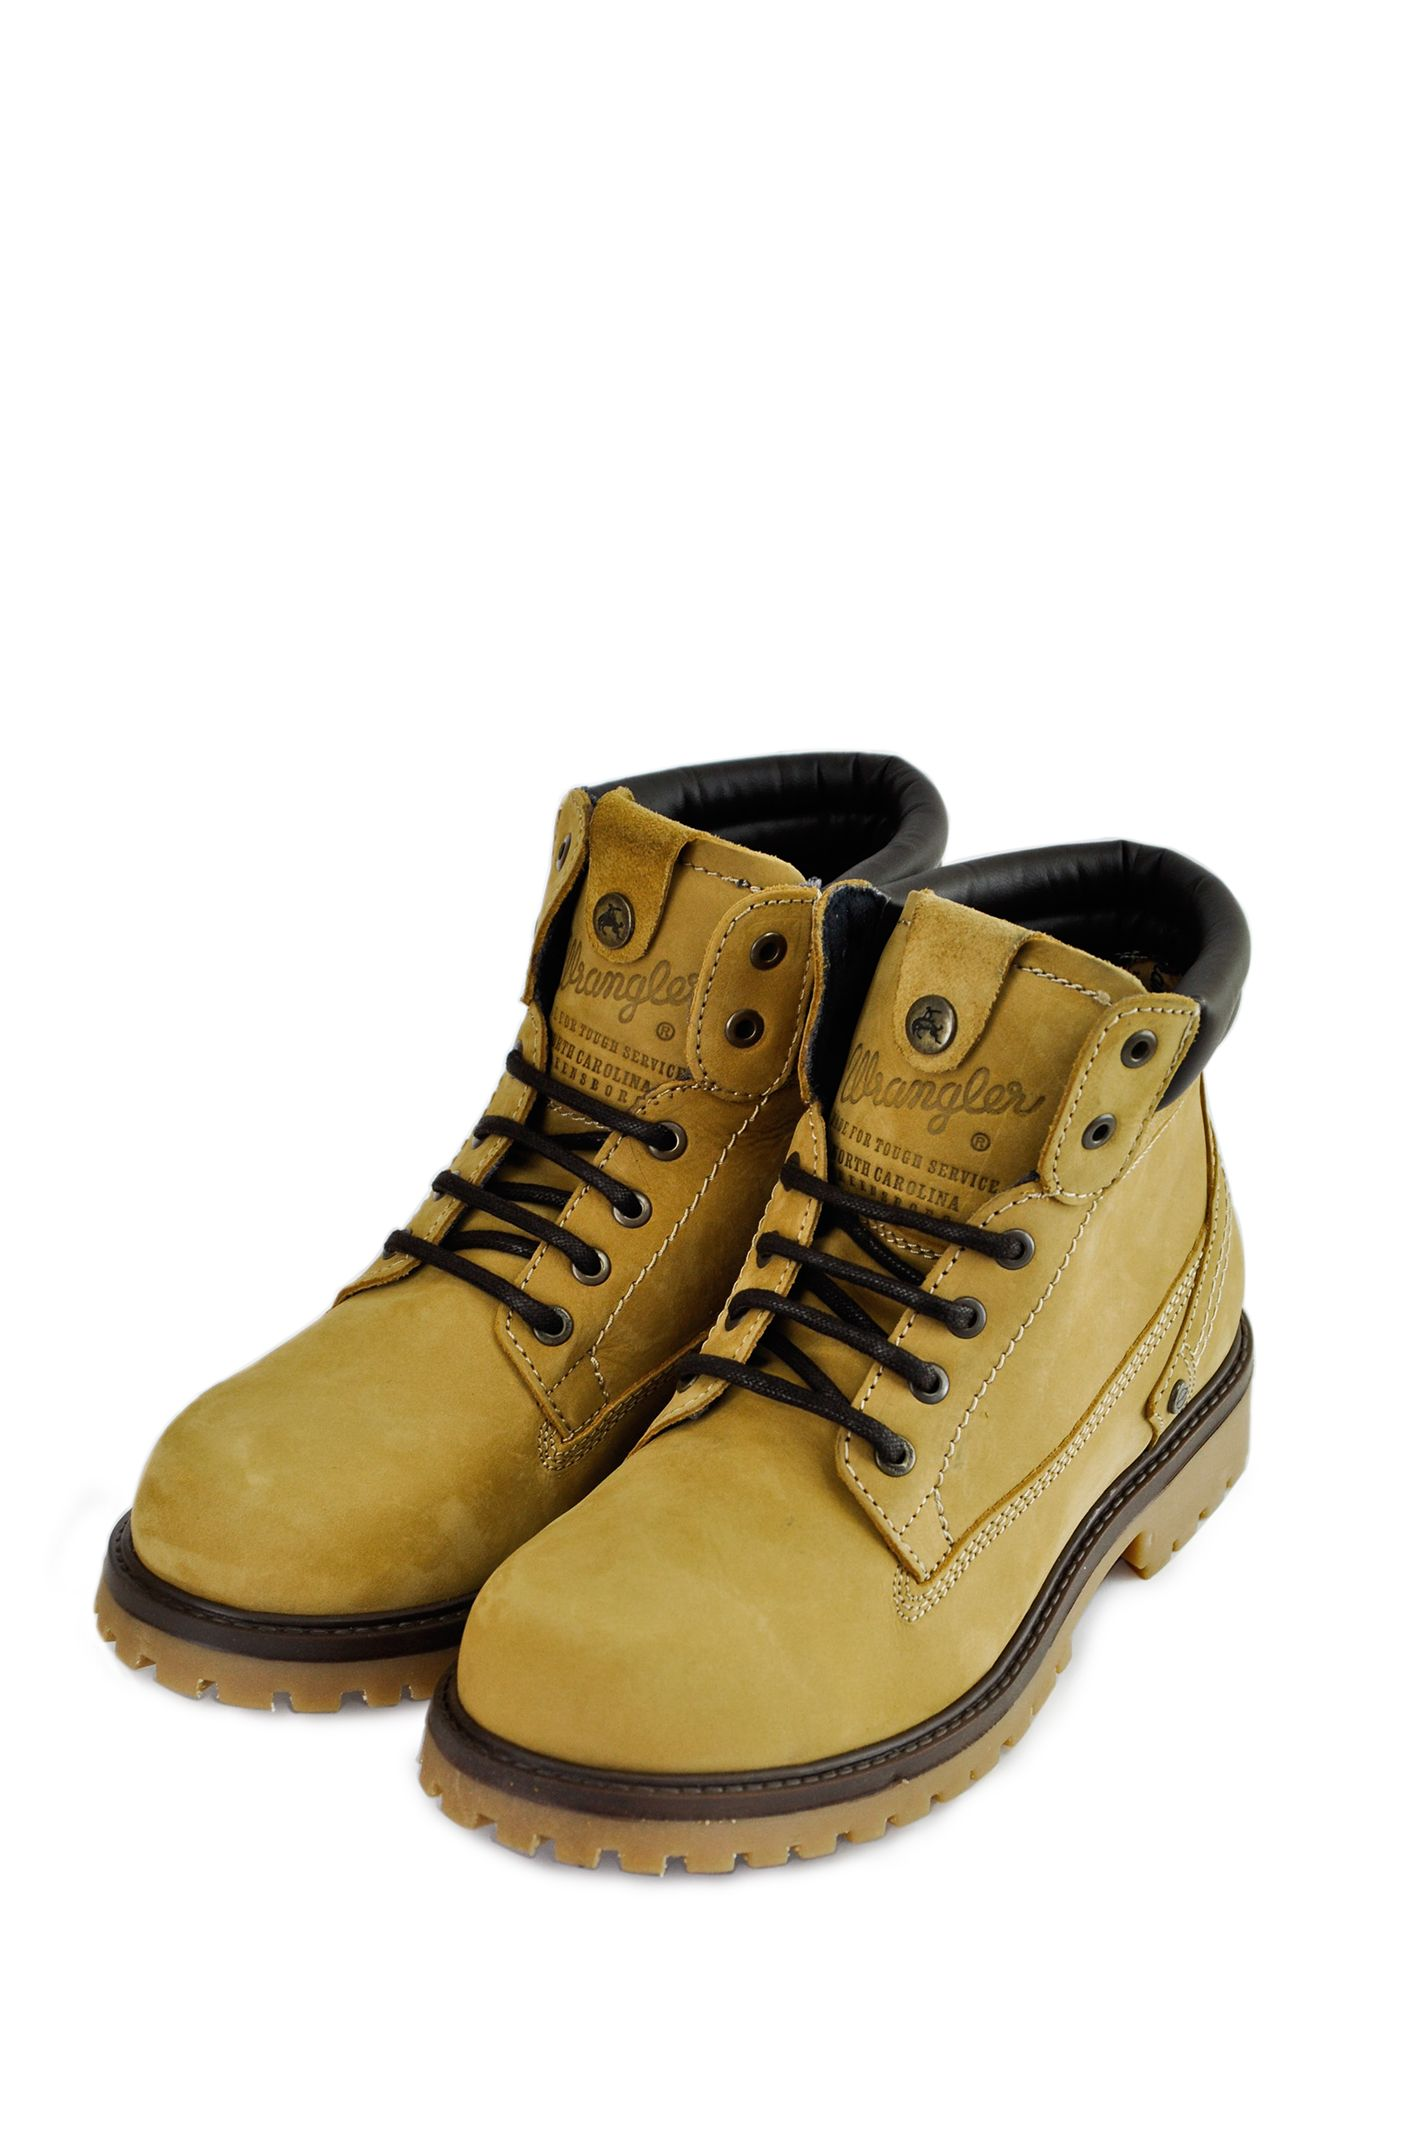 Pin On Buty Meskie Shoes For Men Sklep Internetowy Texas Club